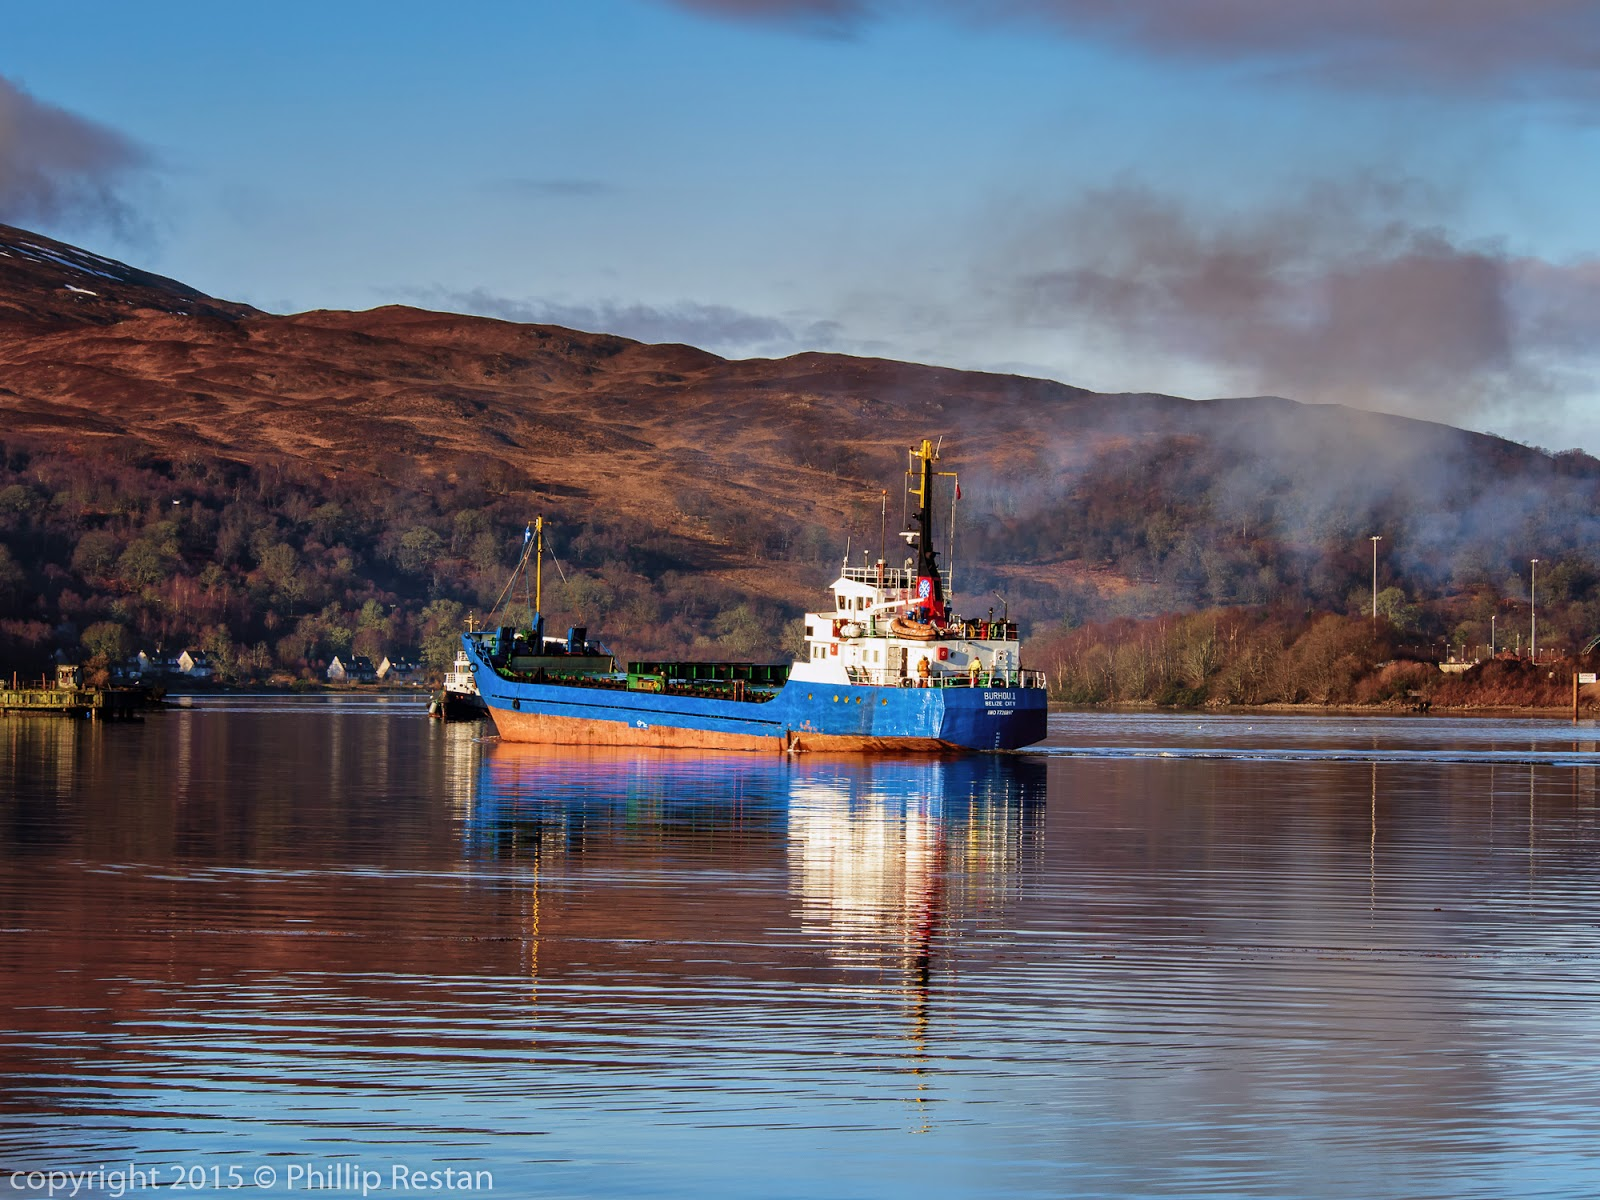 Image of The  Burhou I returning to her berth after the failed attempt to tow the Fri Sea off the Corpach beach